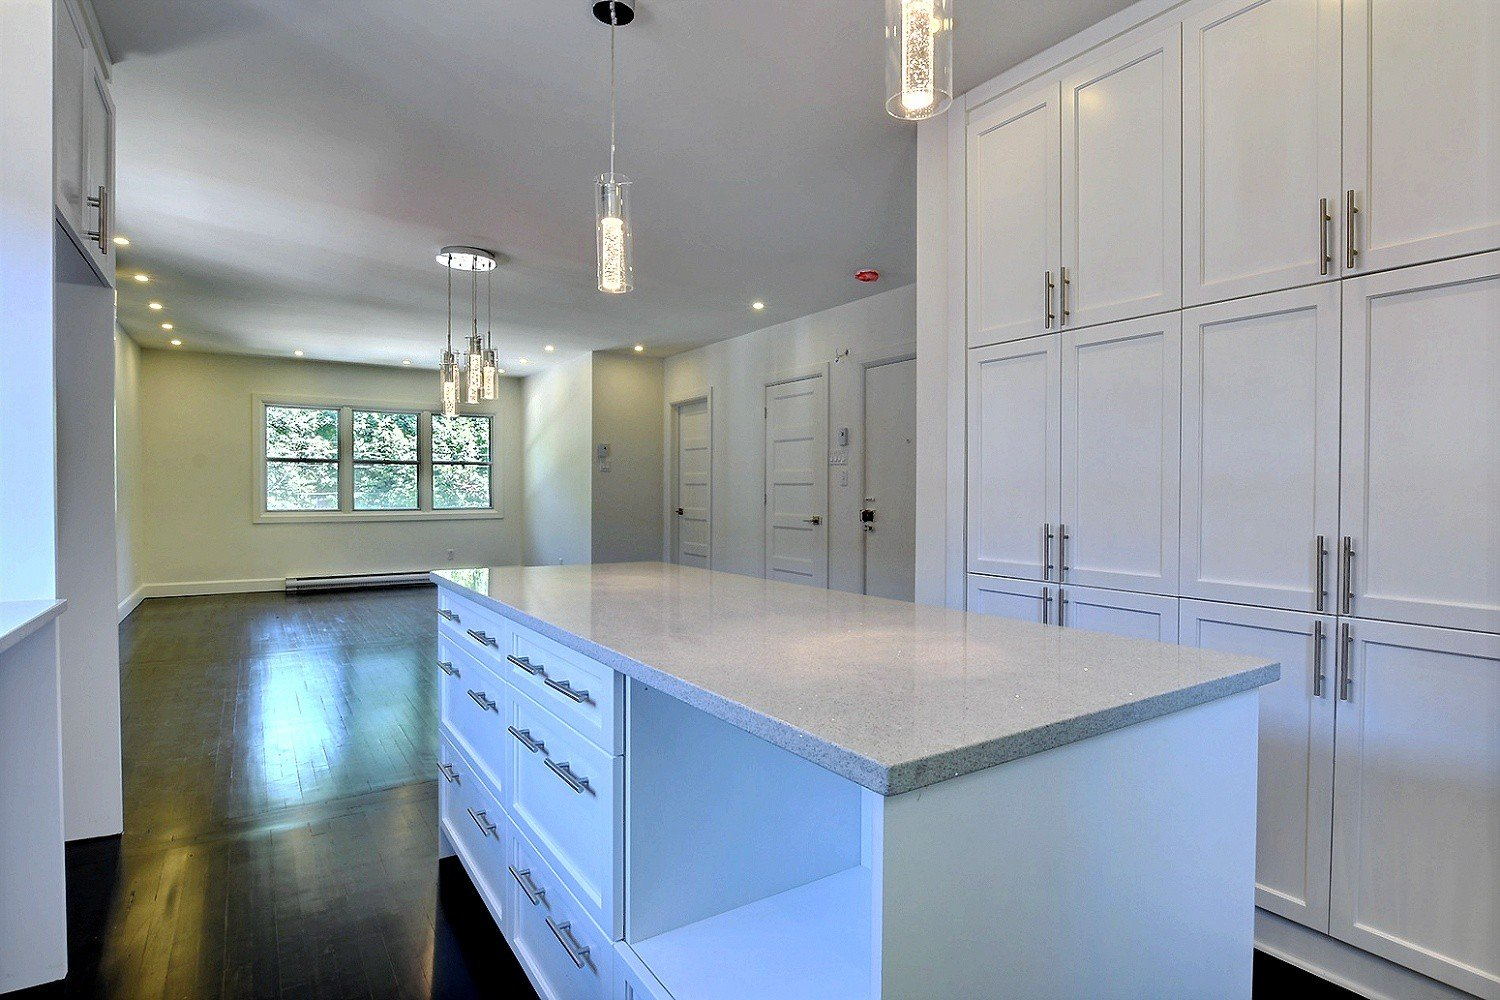 condo for sale cotedesneigesnotredamedegracemontreal Buy